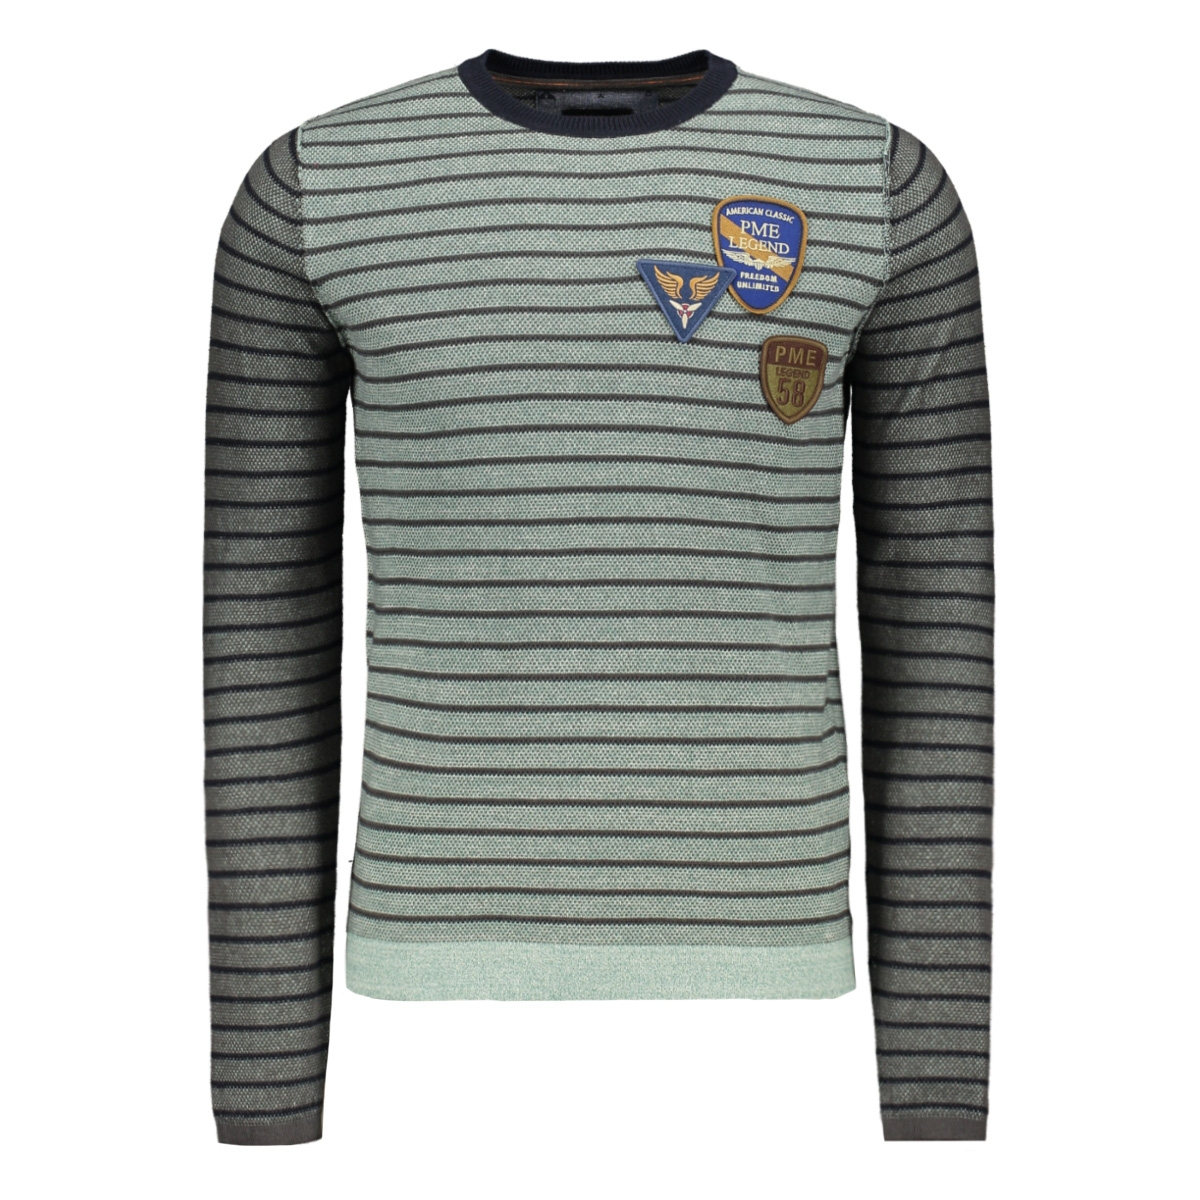 cotton striped crewneck pkw195305 pme legend trui 5224